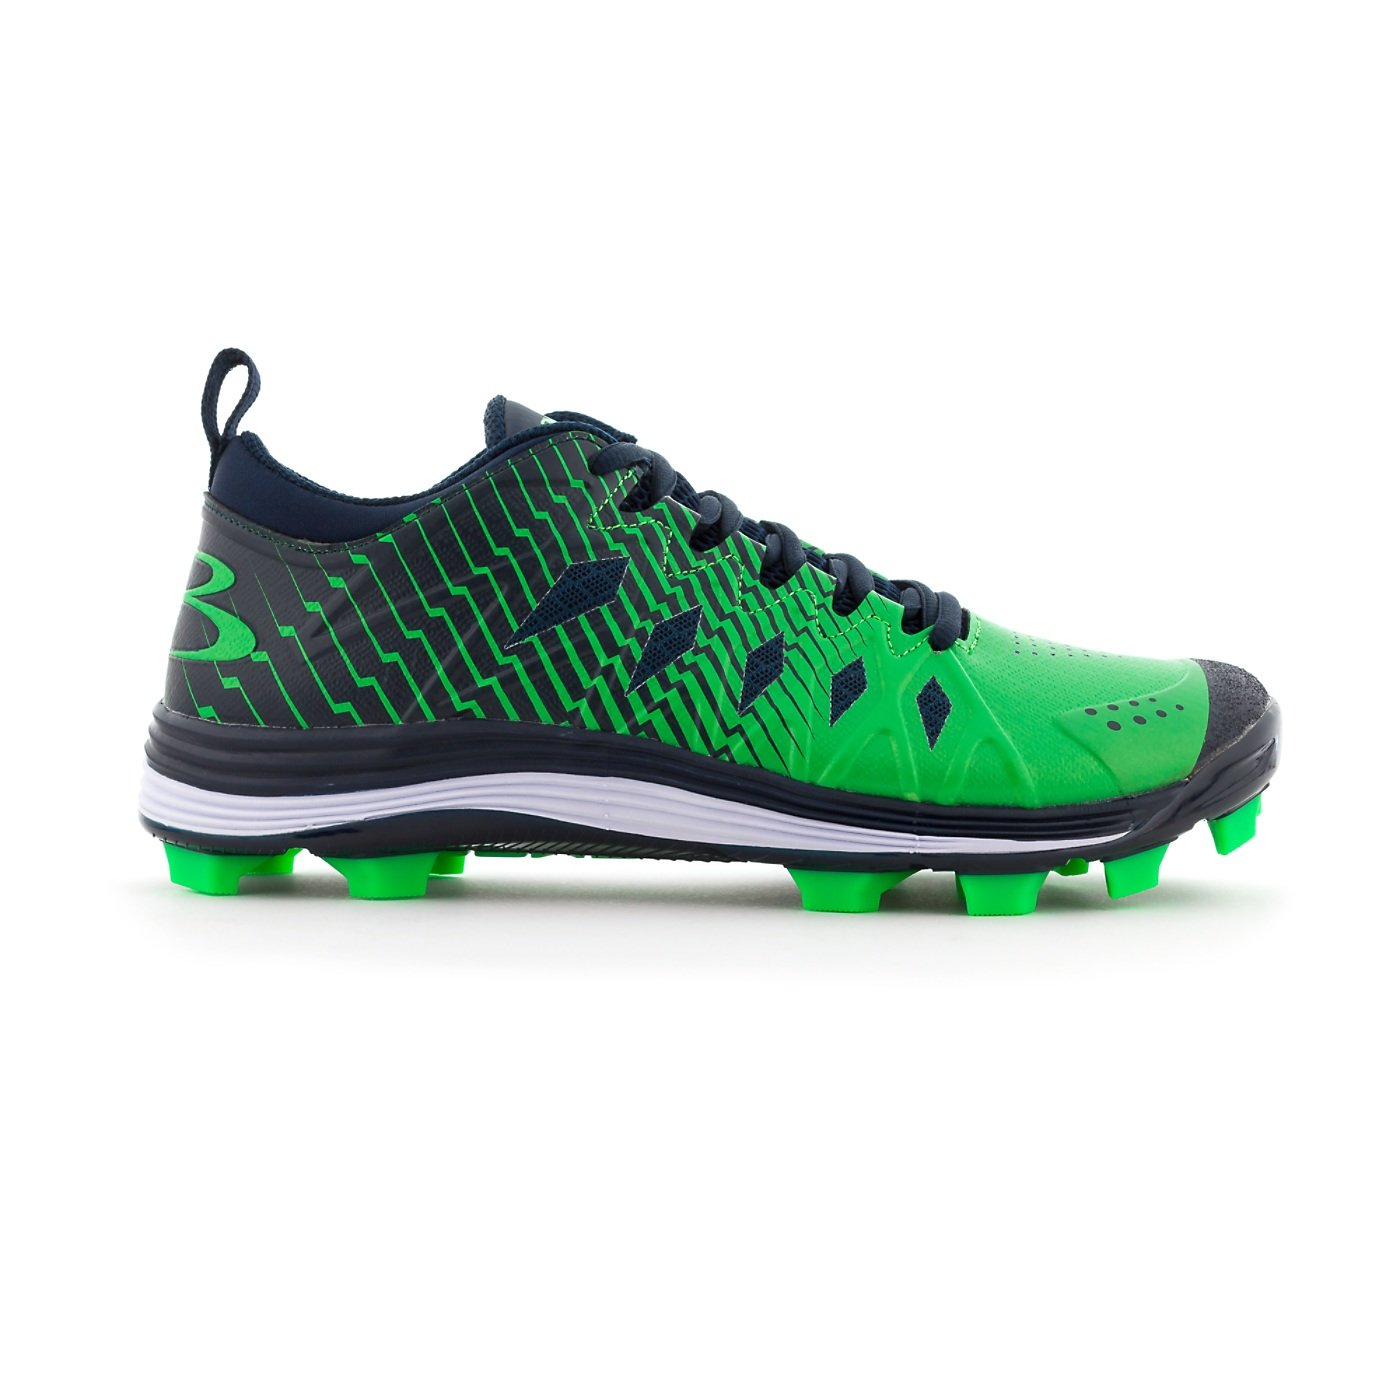 Boombah Men's Squadron Molded Cleats - 8 Color Options - Multiple Sizes B079V14SSJ 5.5|Navy/Lime Green